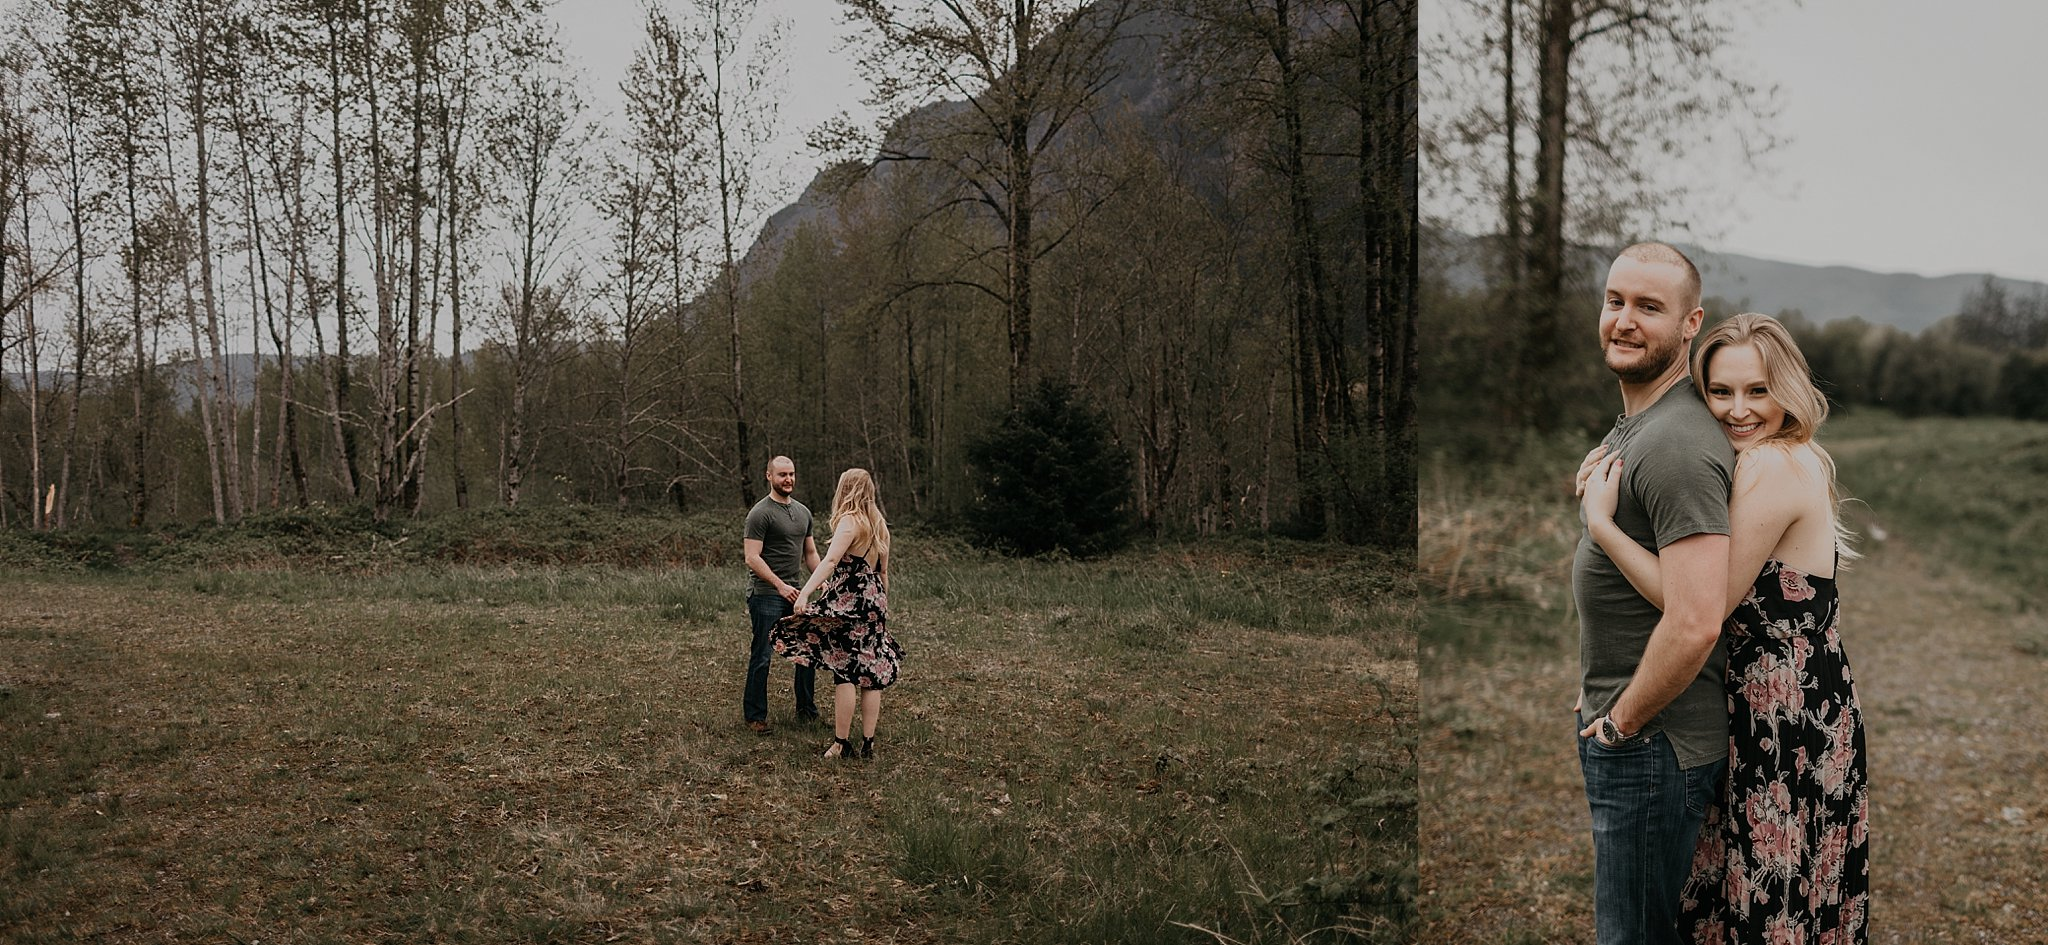 samantha_mcfarlen_bellingham_washington_engagement_photography_seattle_wedding_photographer_0294.jpg